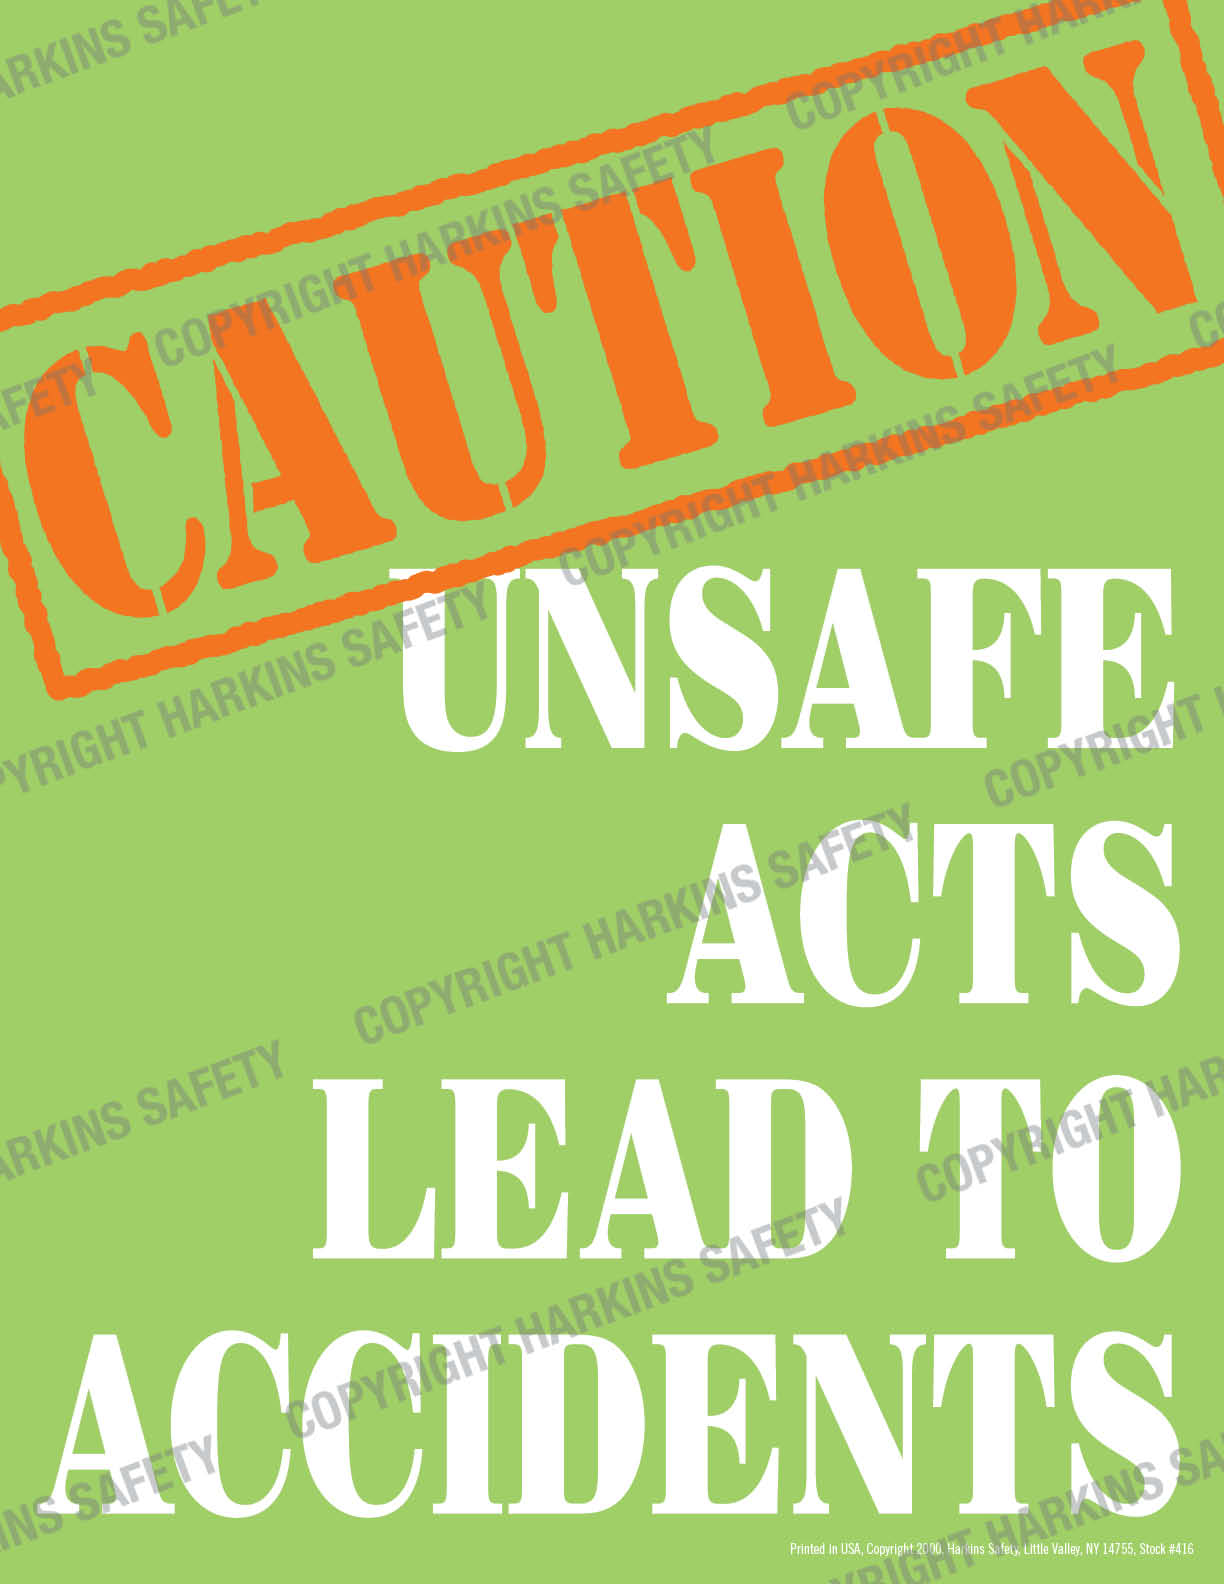 Caution Unsafe Acts Lead To Accidents (Poster)